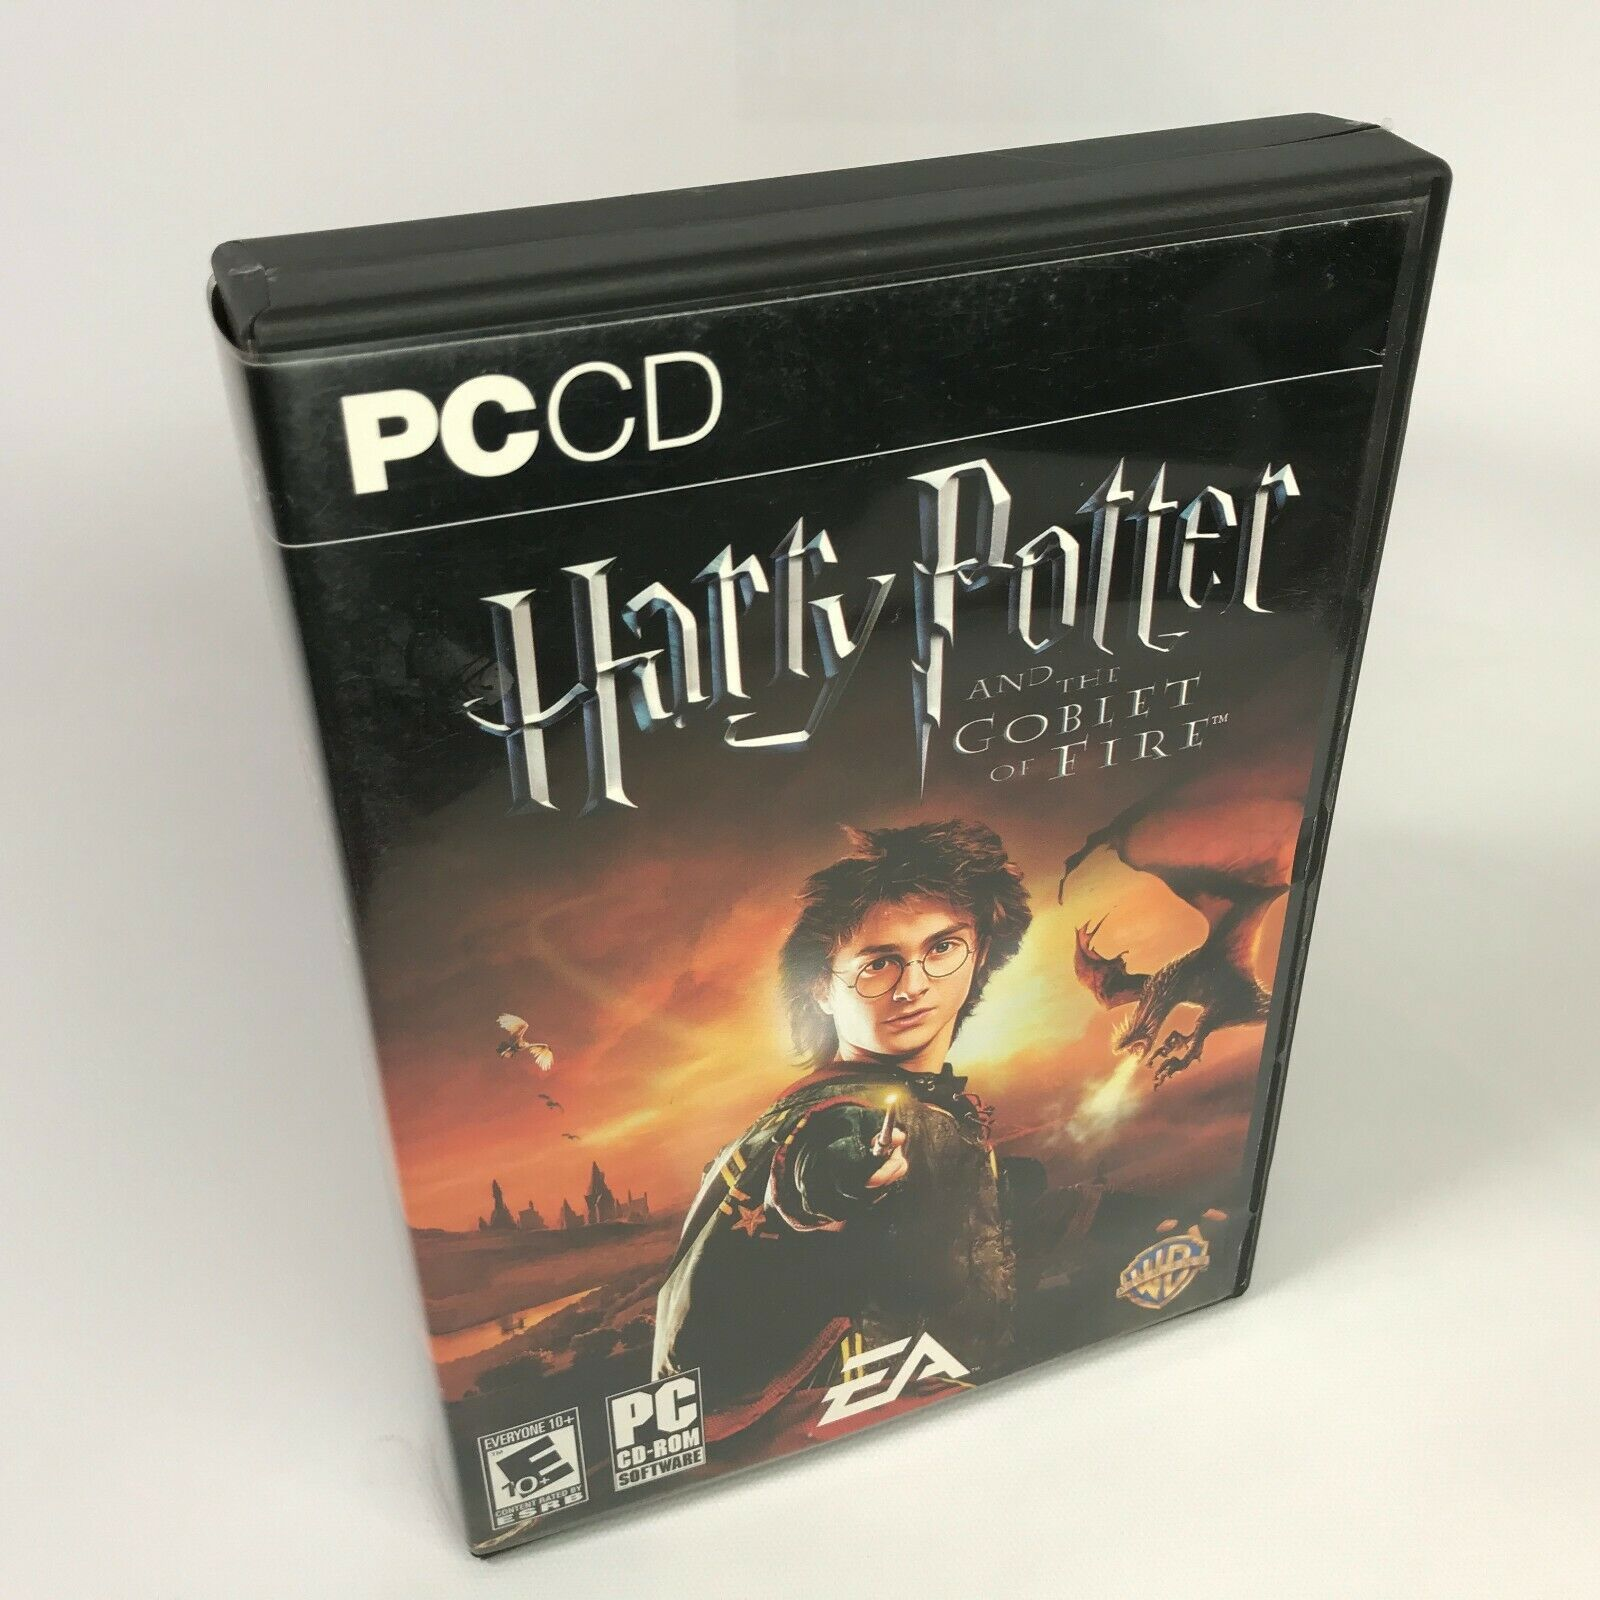 Harry Potter and the Goblet of Fire PC CD-ROM COMPLETE IN BOX CIB Manual EA DVD - $14.85